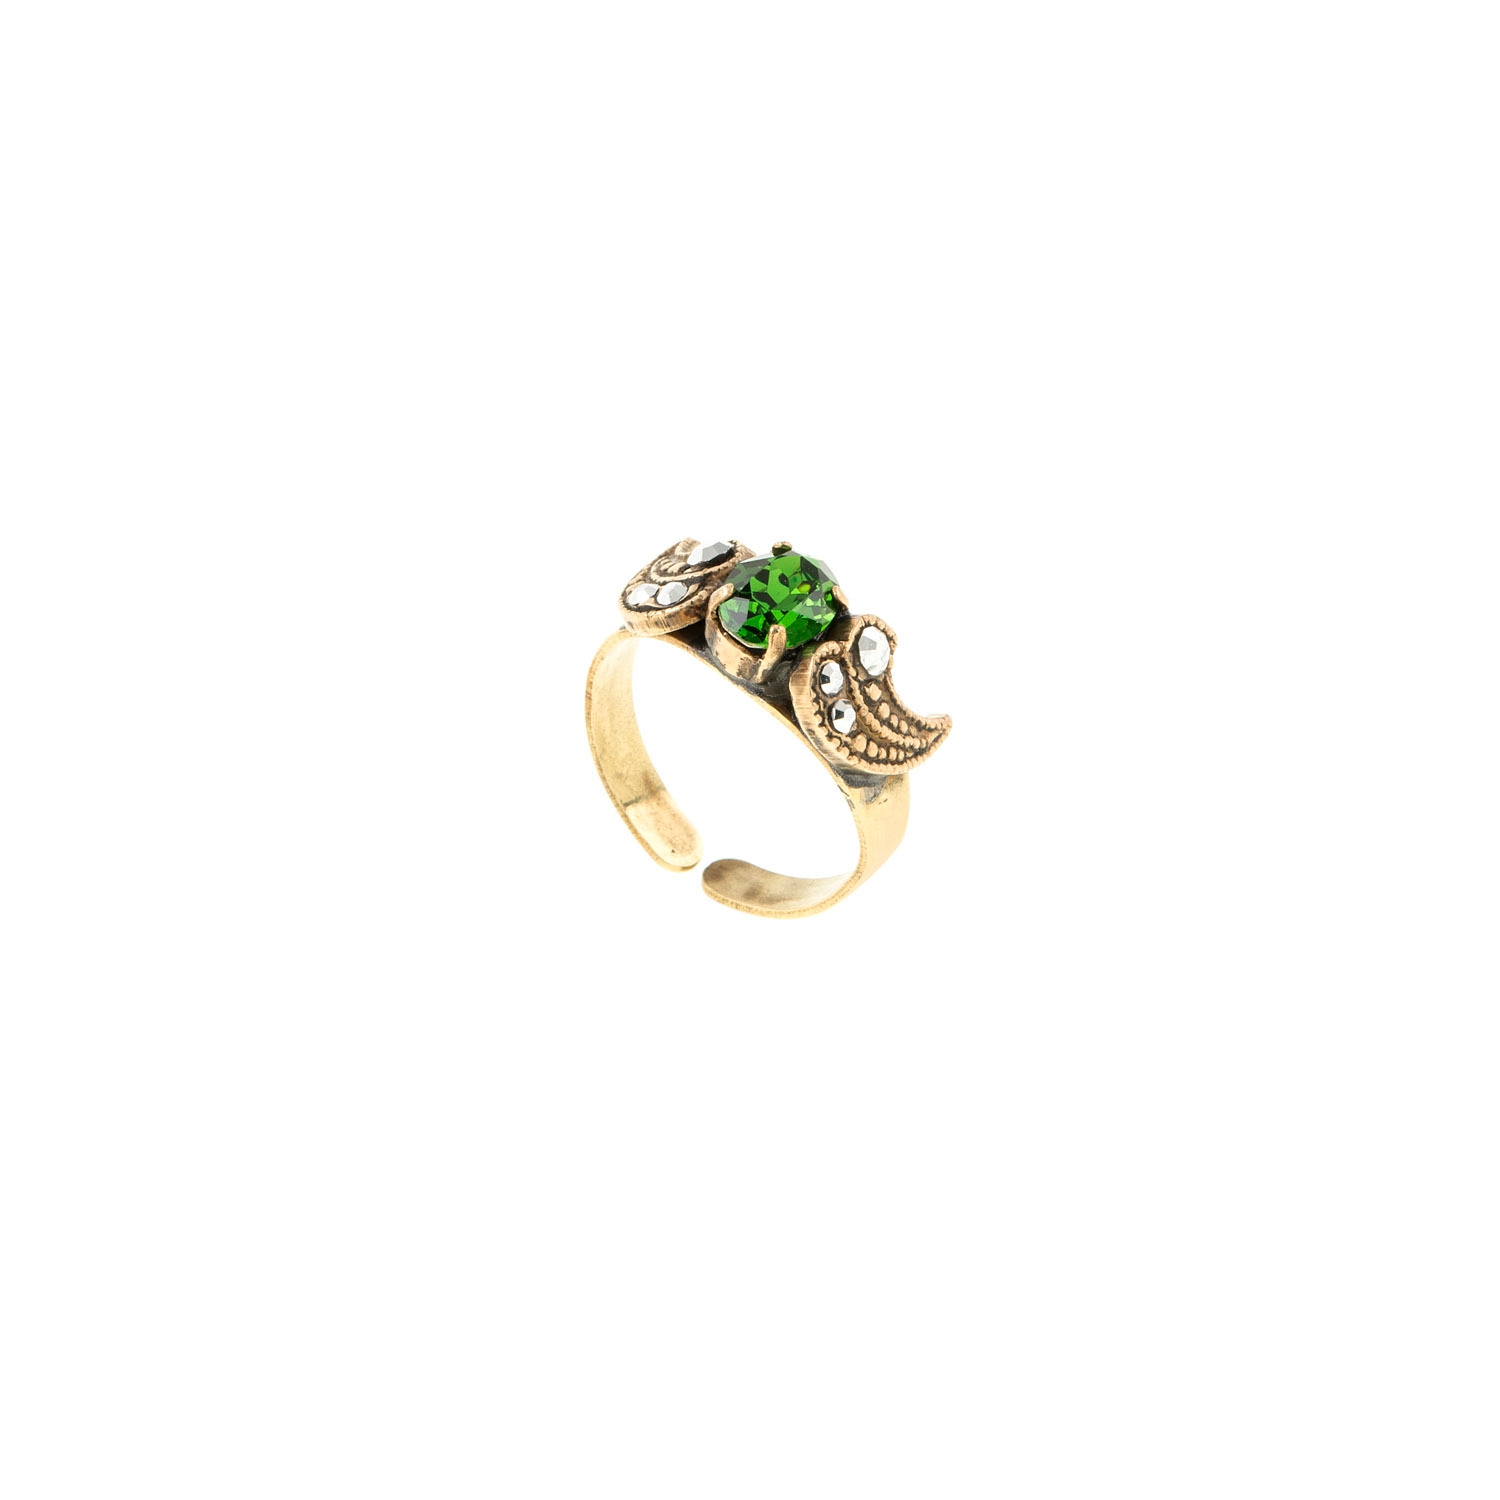 HALO & CO GREEN GODDESS RING IN ANTIQUE DISTRESSED GOLD COLOUR